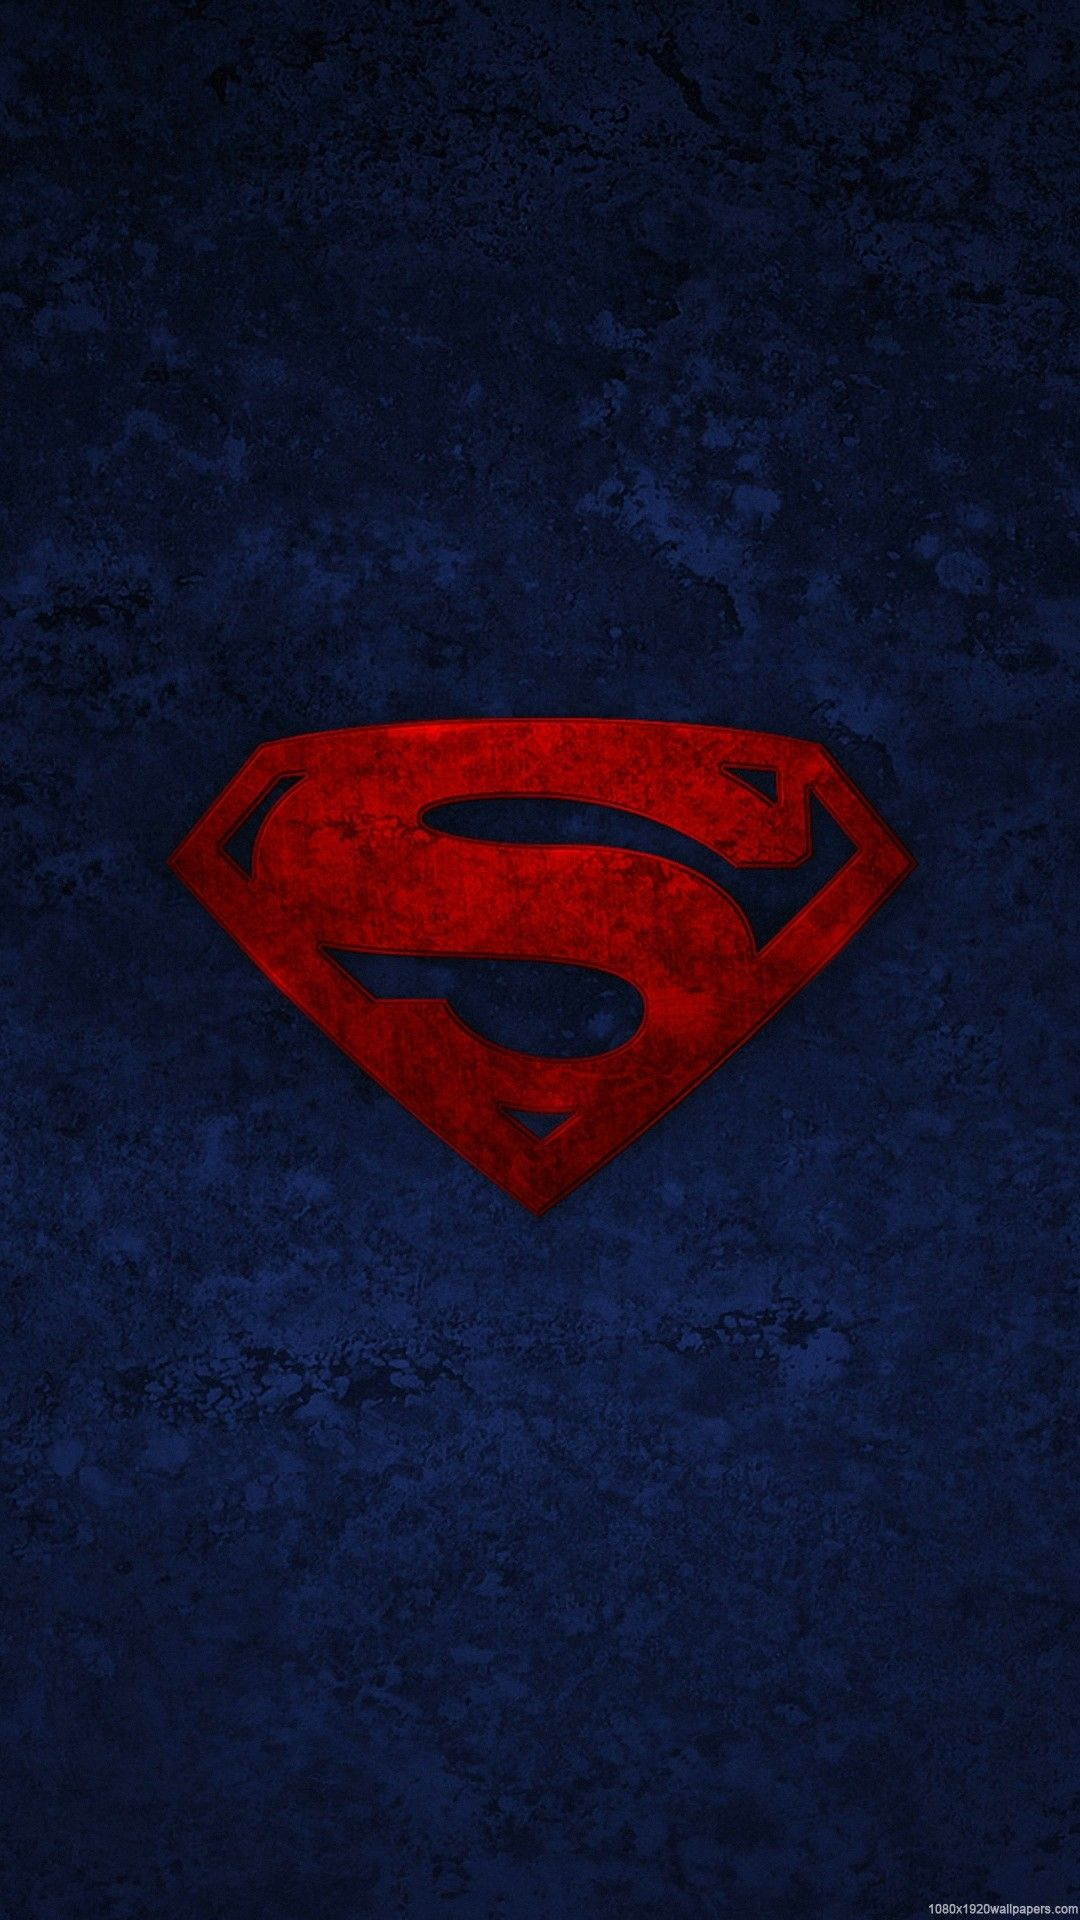 1080x1920 1080x1920 Superman Logo Wallpapers With Images